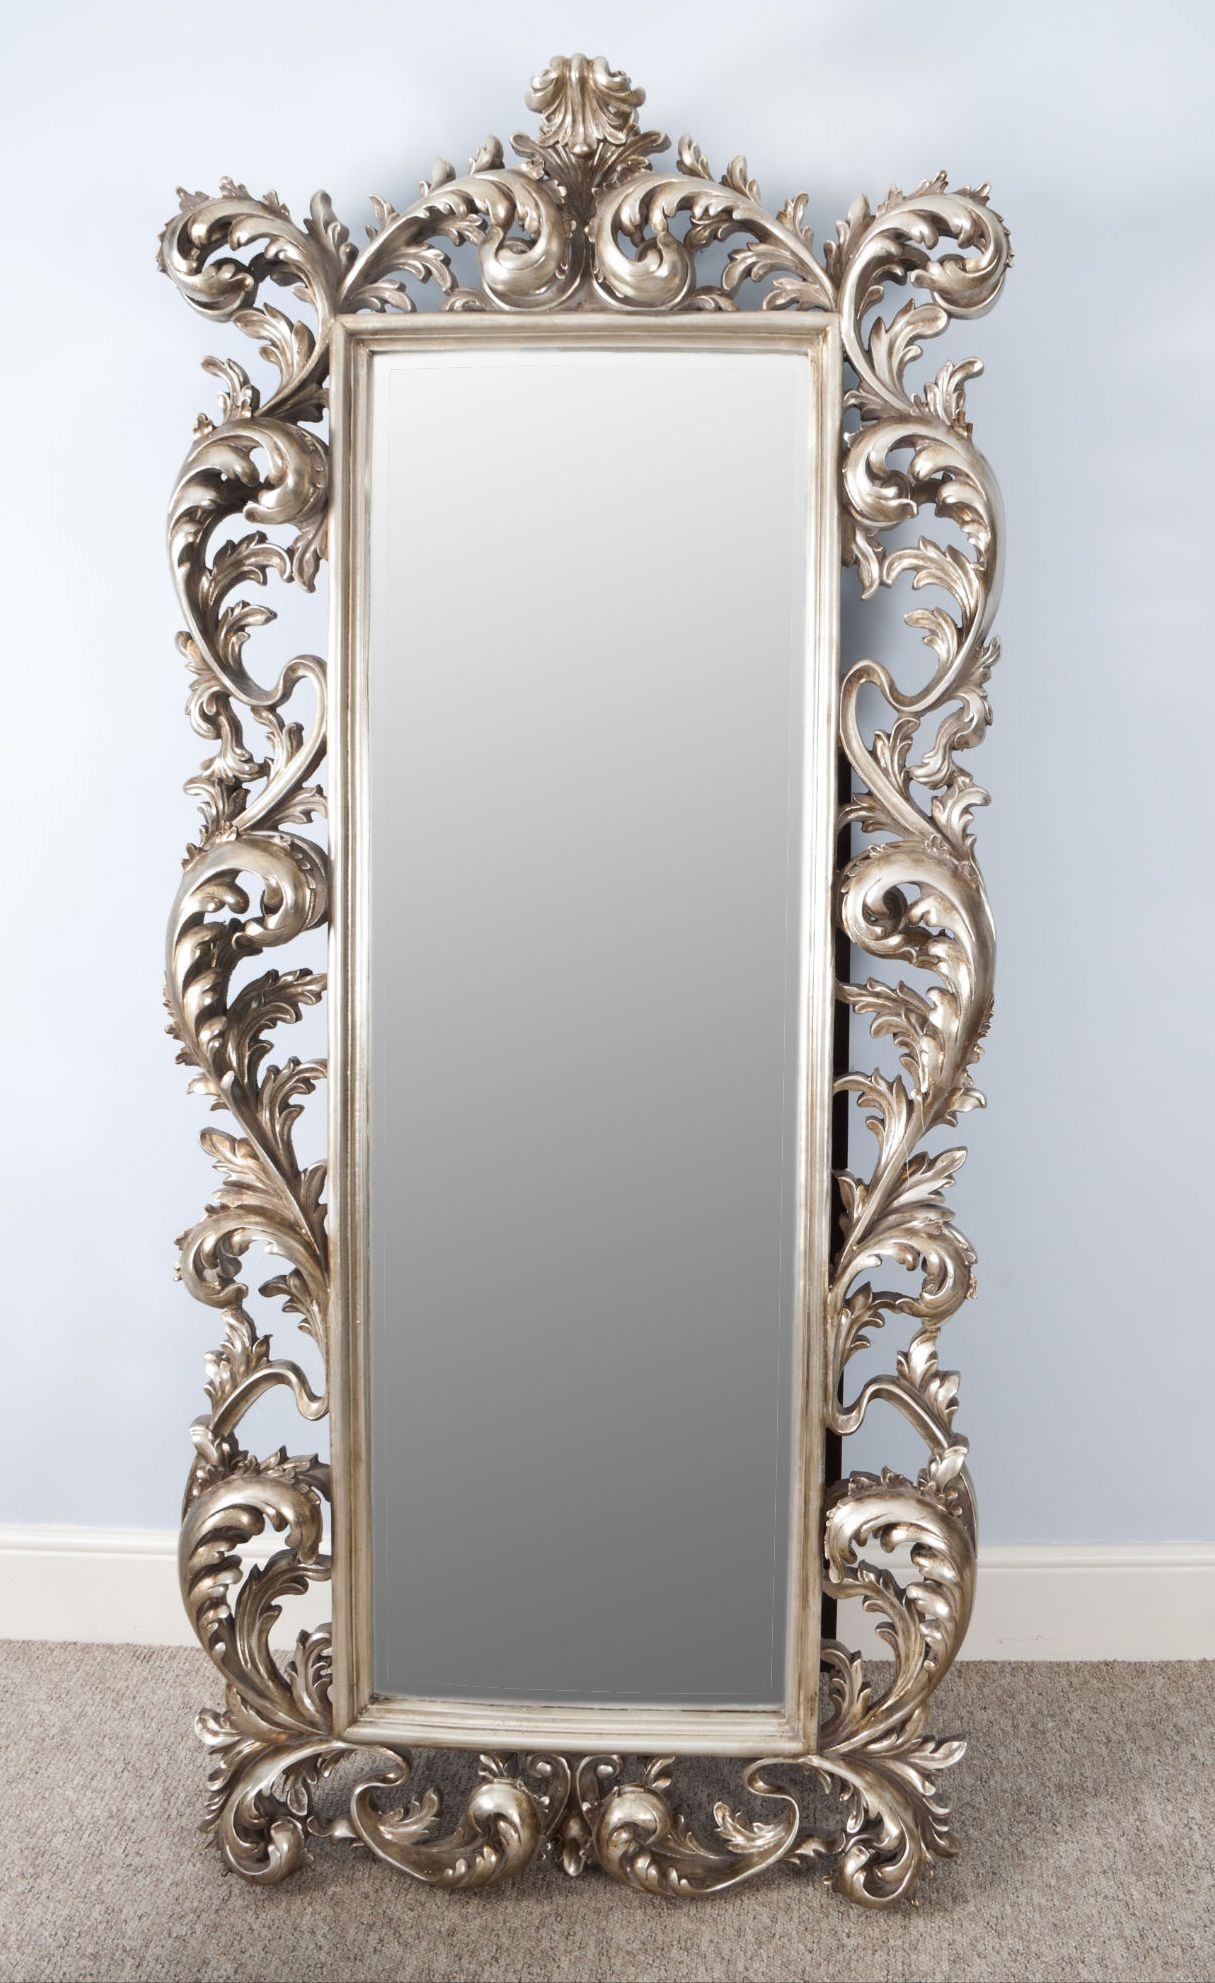 Wondrous Old Oval Mirror Antique Cheval Wall Mirror Likewise Grey With Vintage Mirrors For Sale (Image 14 of 15)